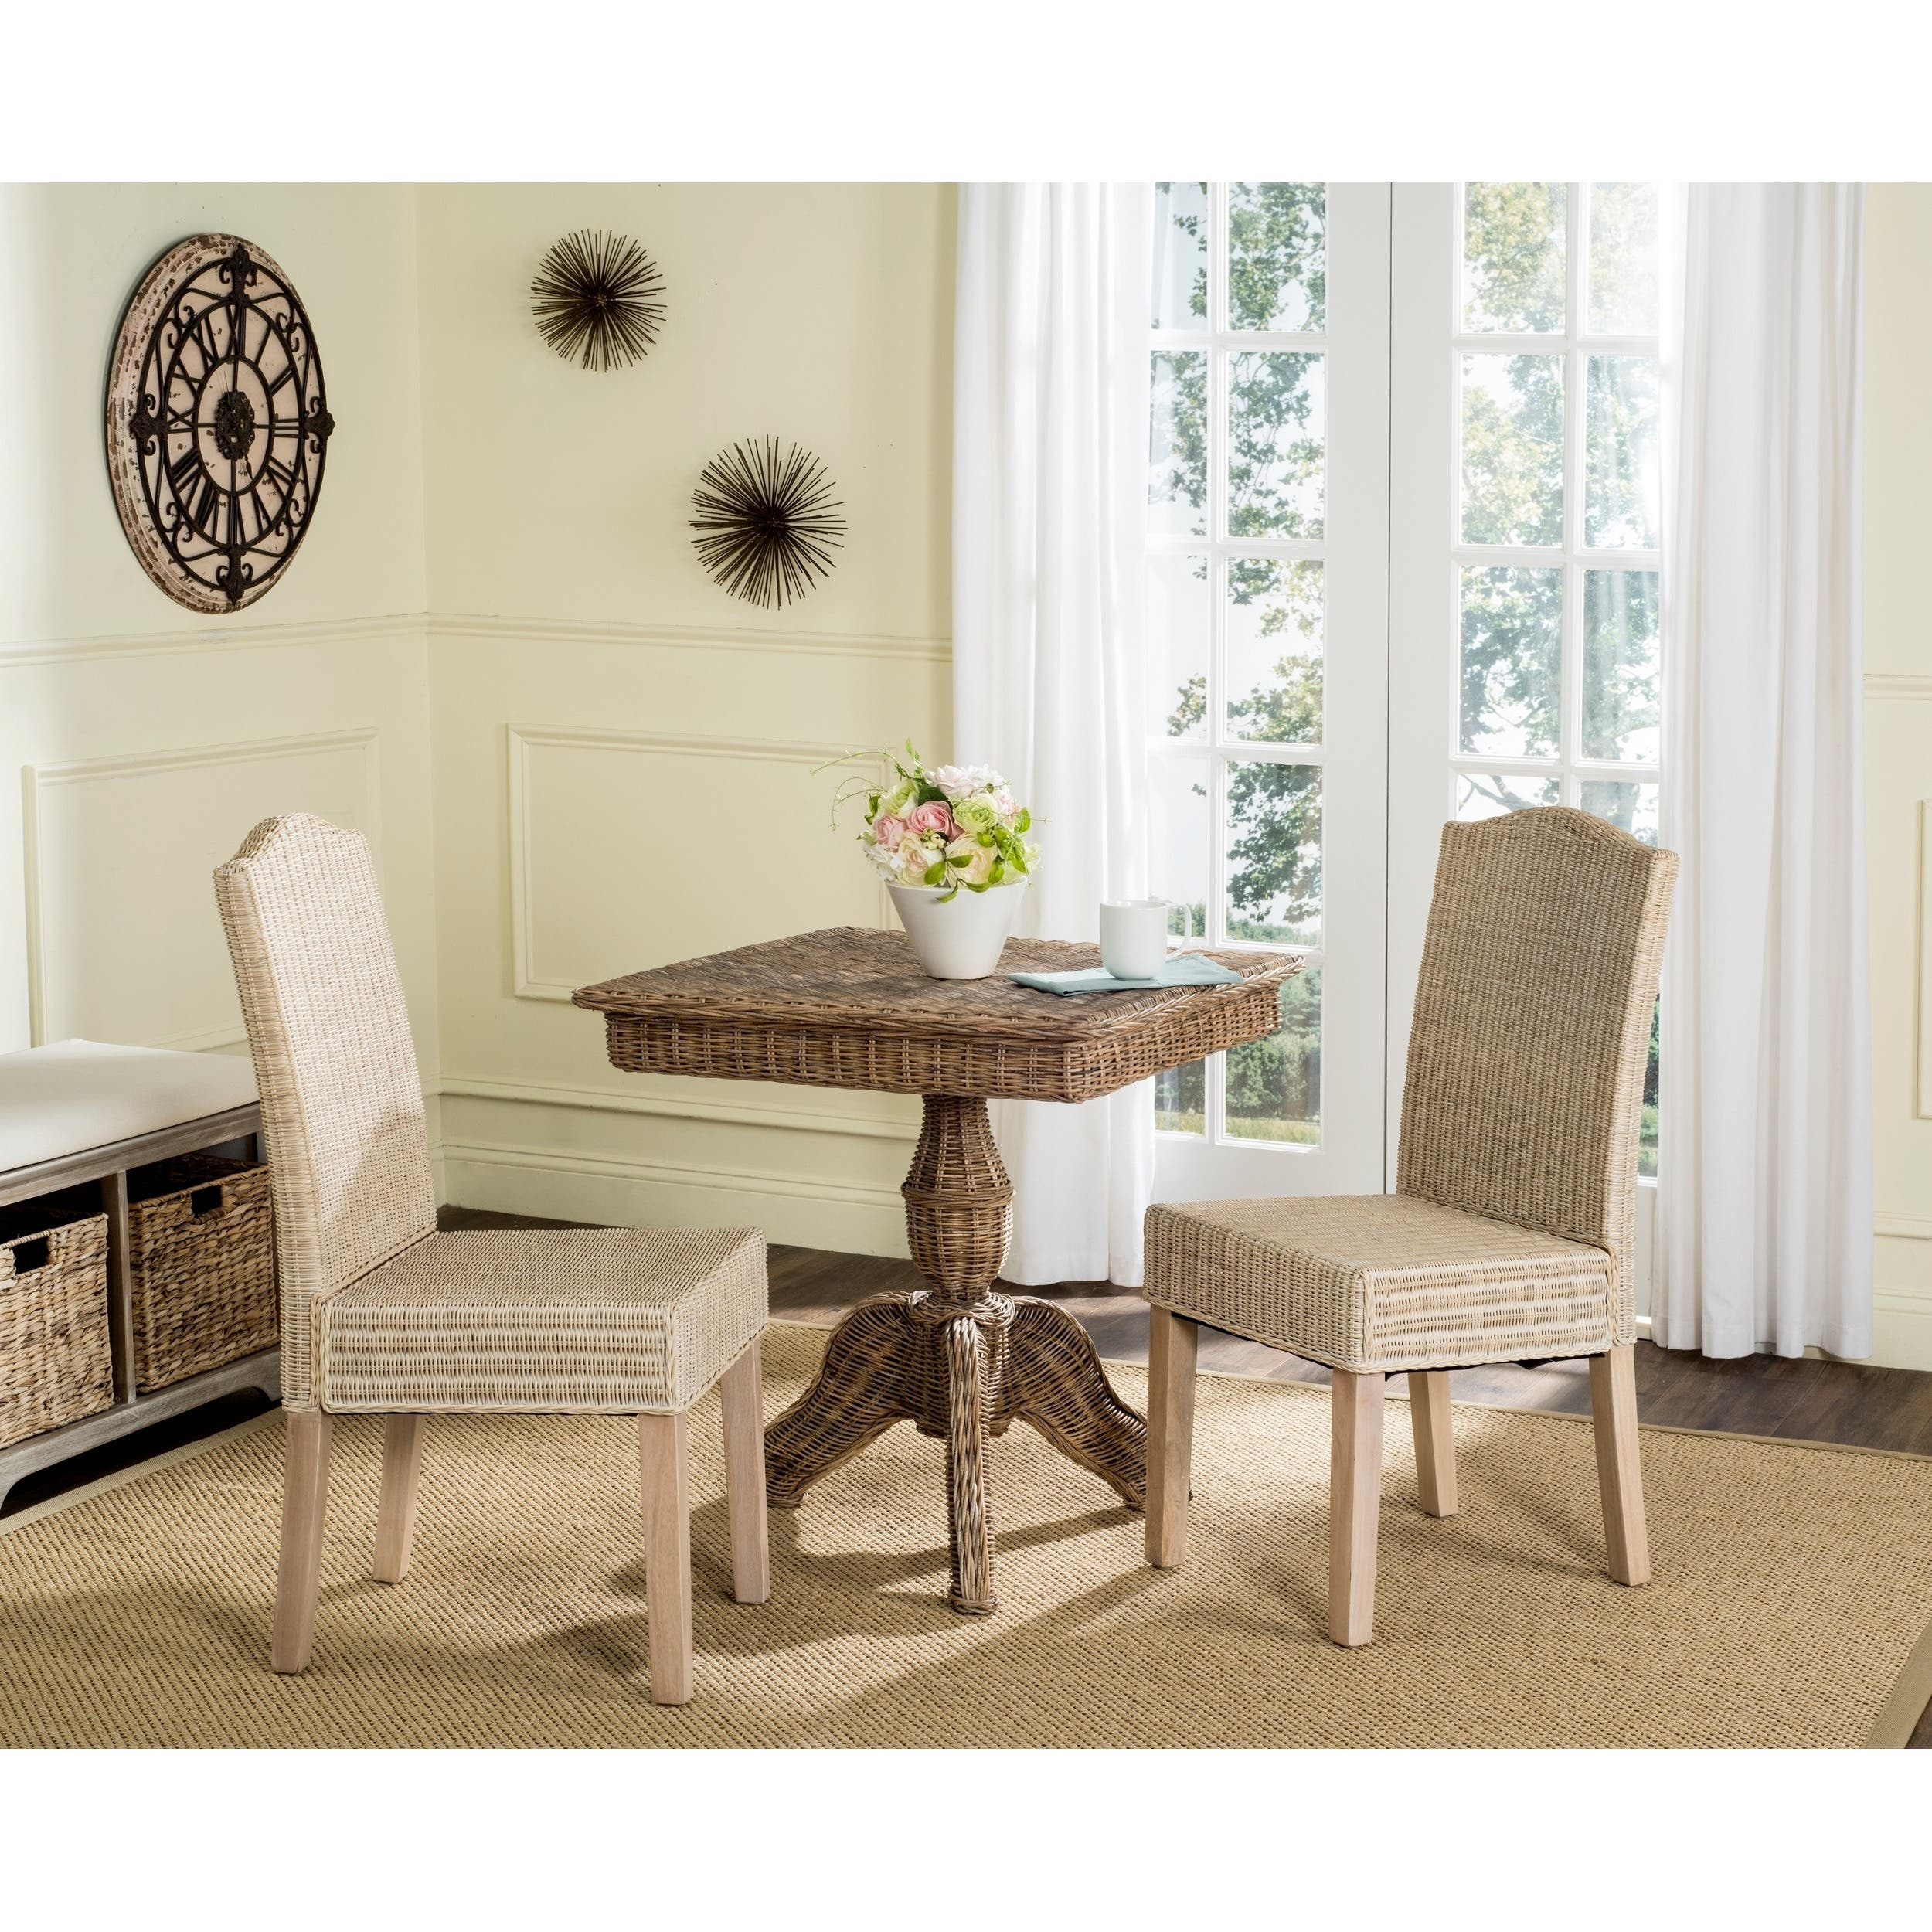 Buy Dining Room Chairs: Buy Kitchen & Dining Room Chairs Online At Overstock